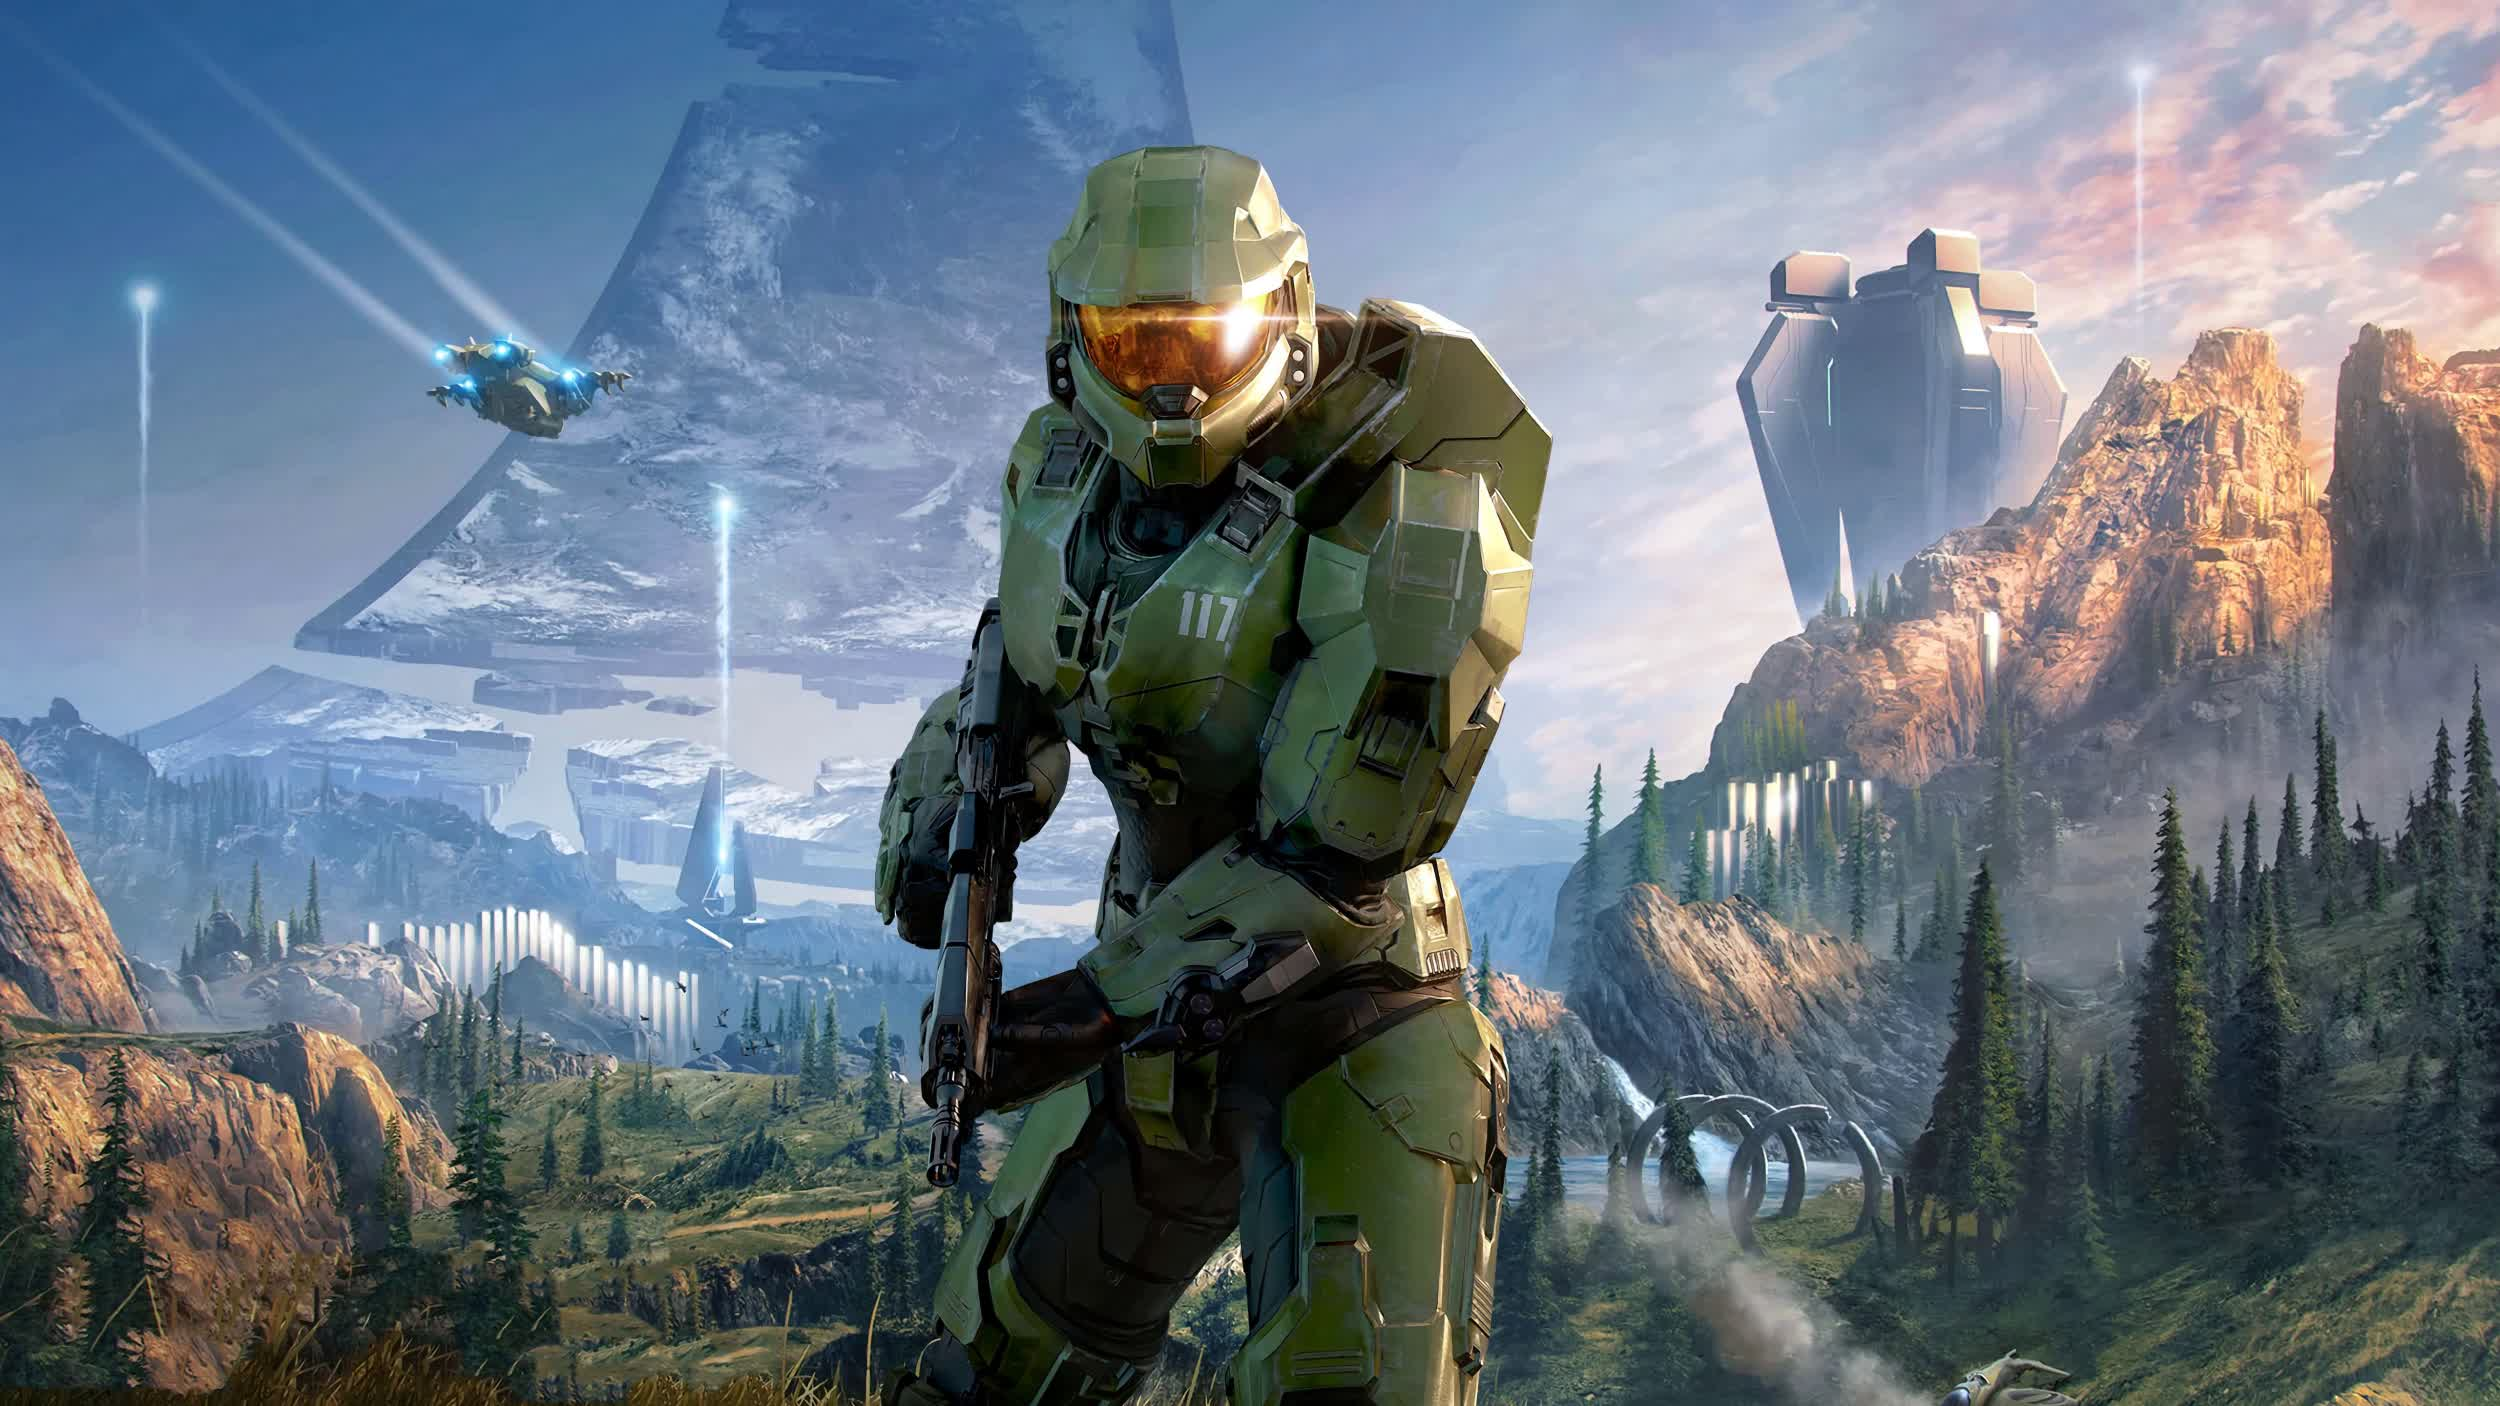 Halo Infinite minimum and recommended PC requirements revealed